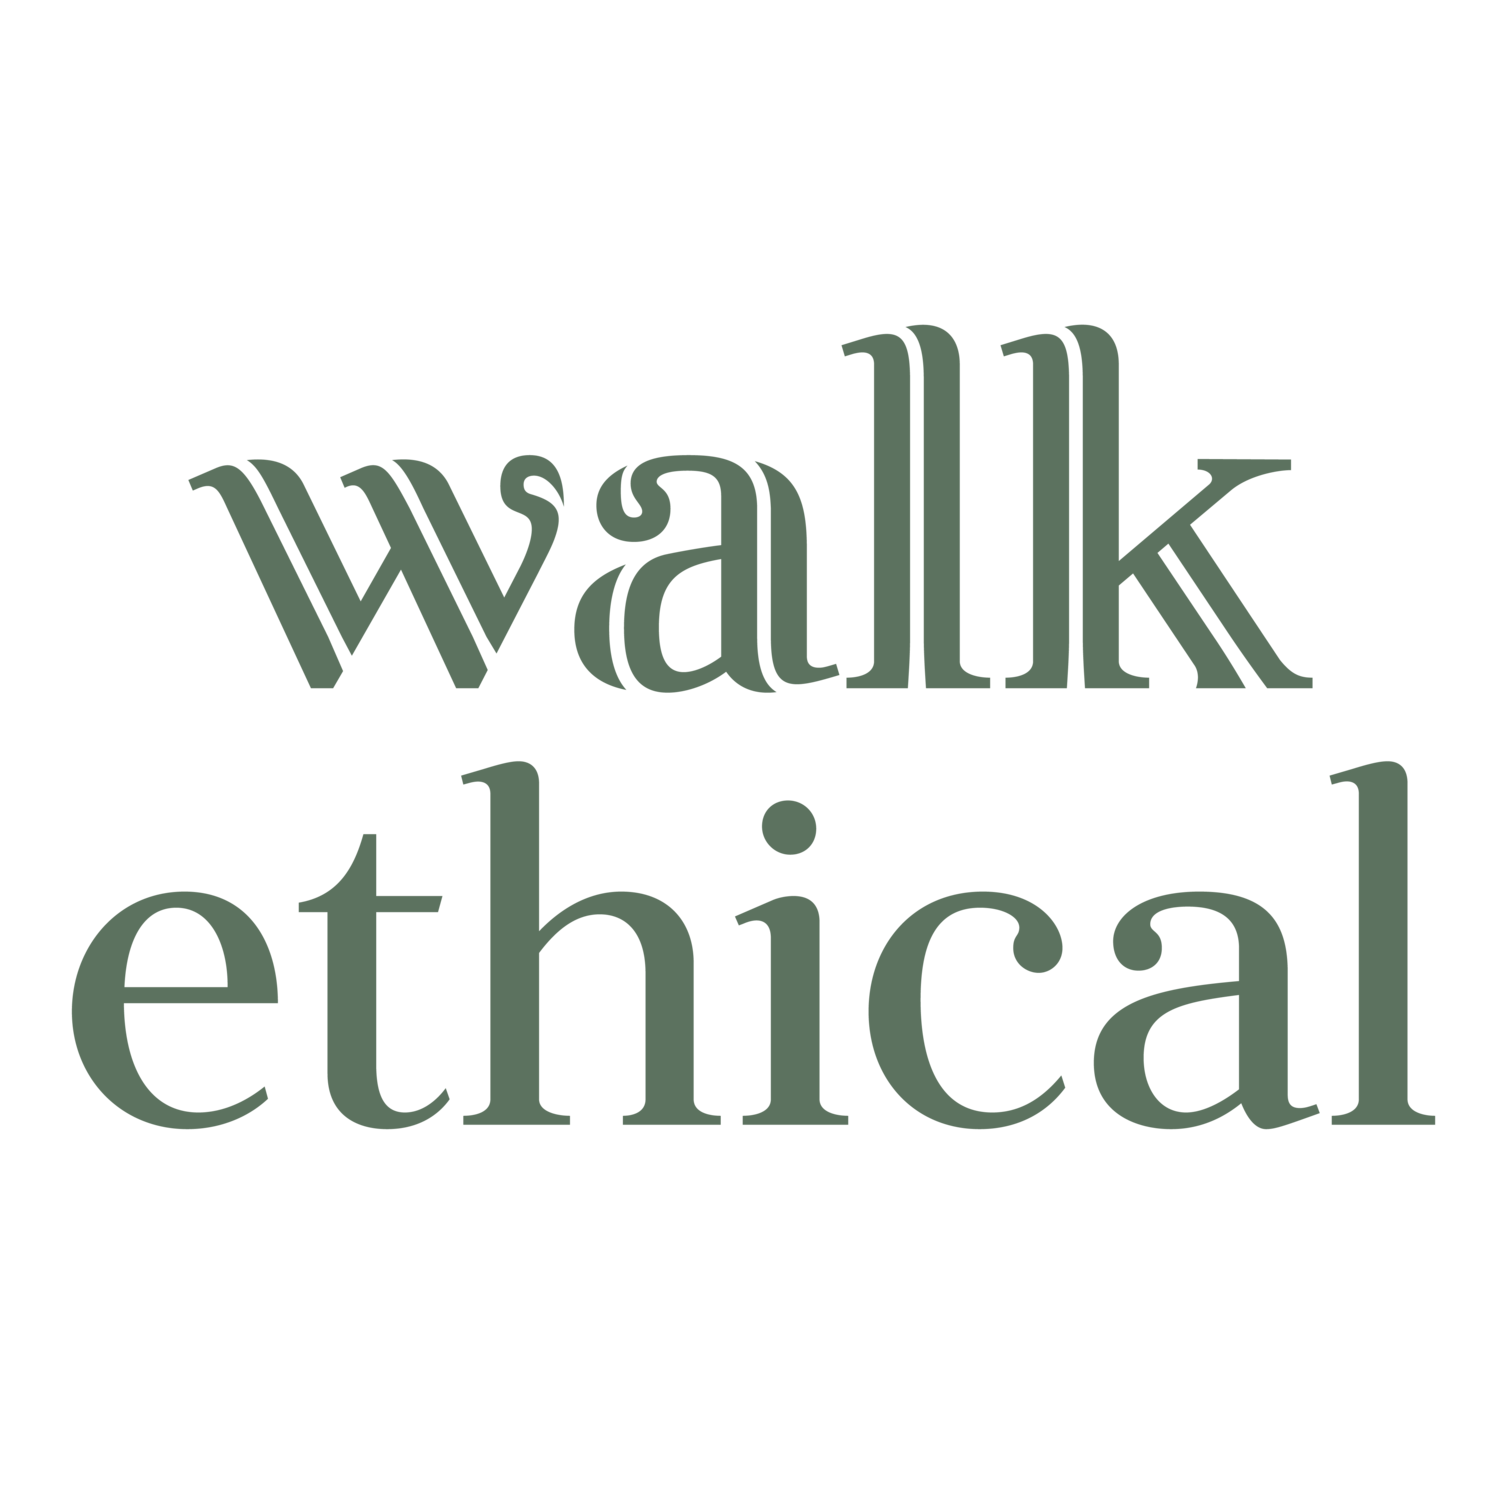 Walk Ethical